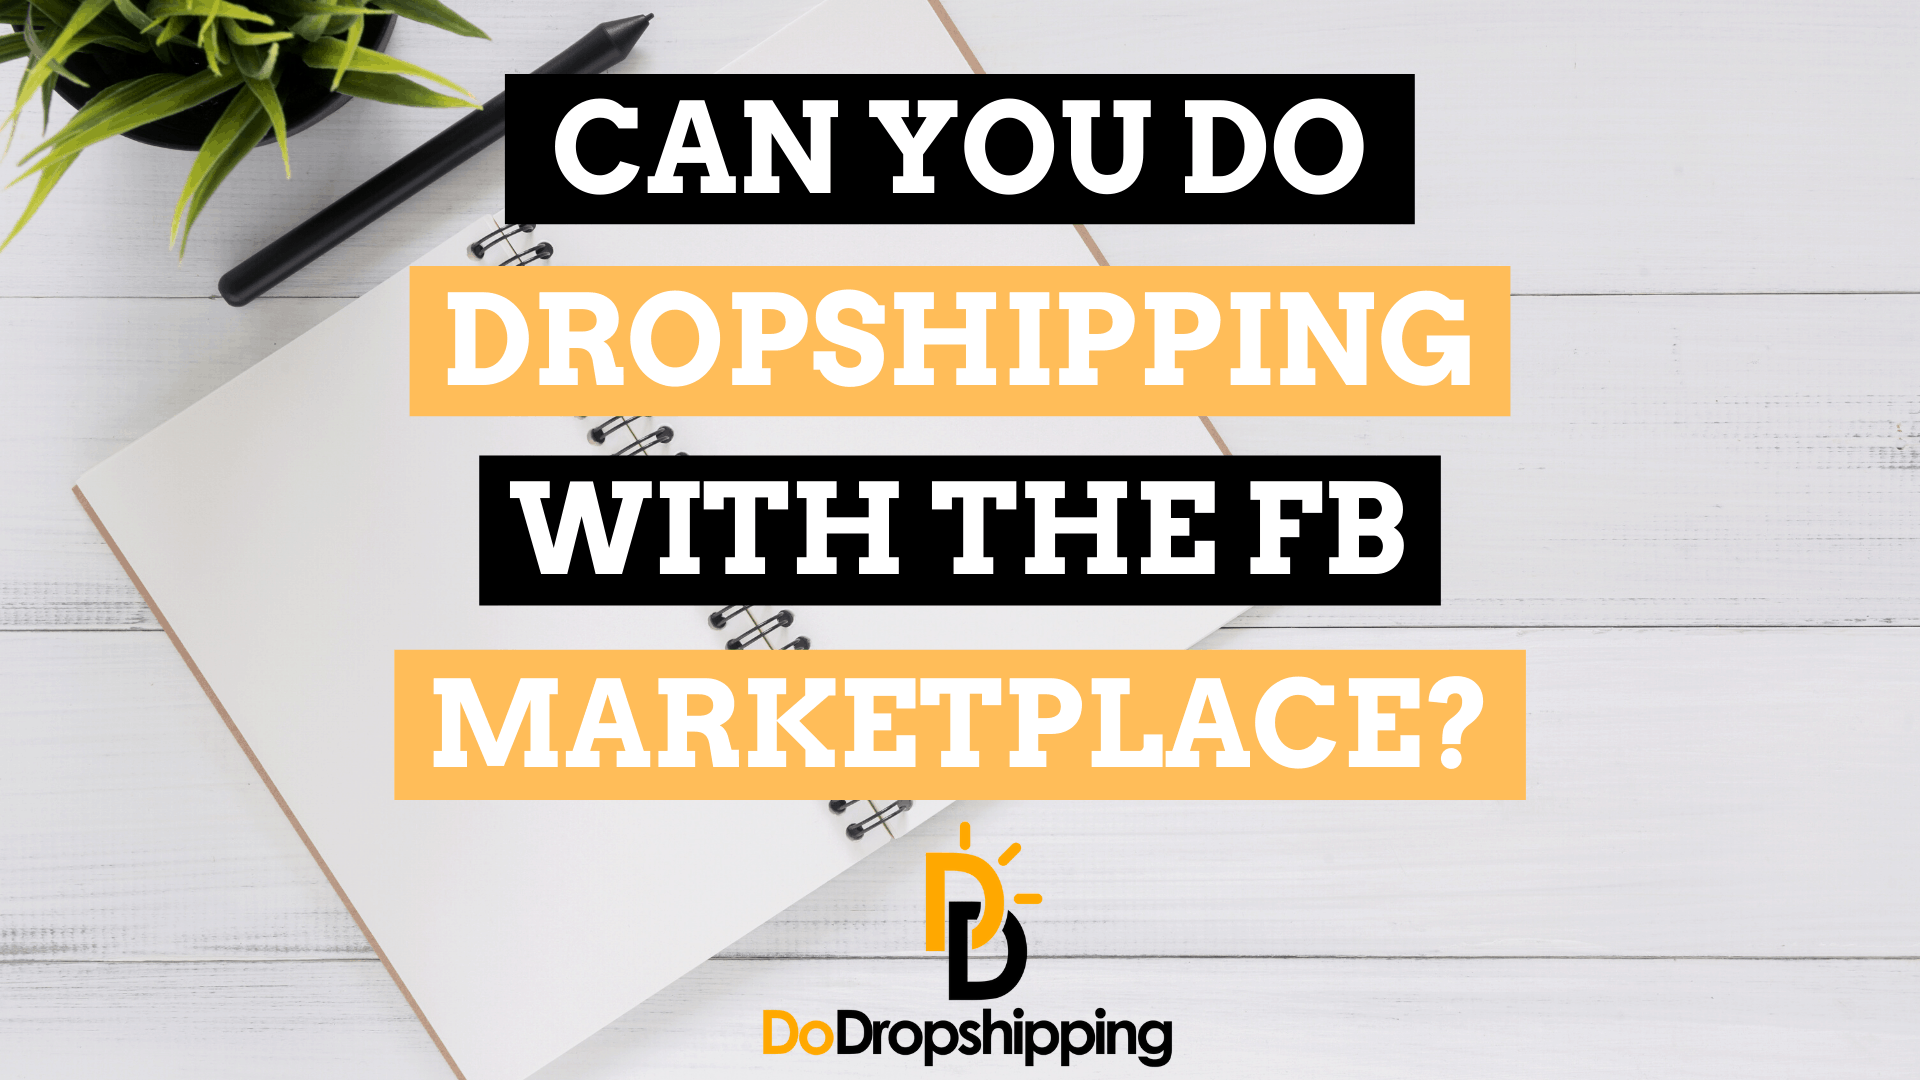 Can You Do Dropshipping With the Facebook Marketplace?